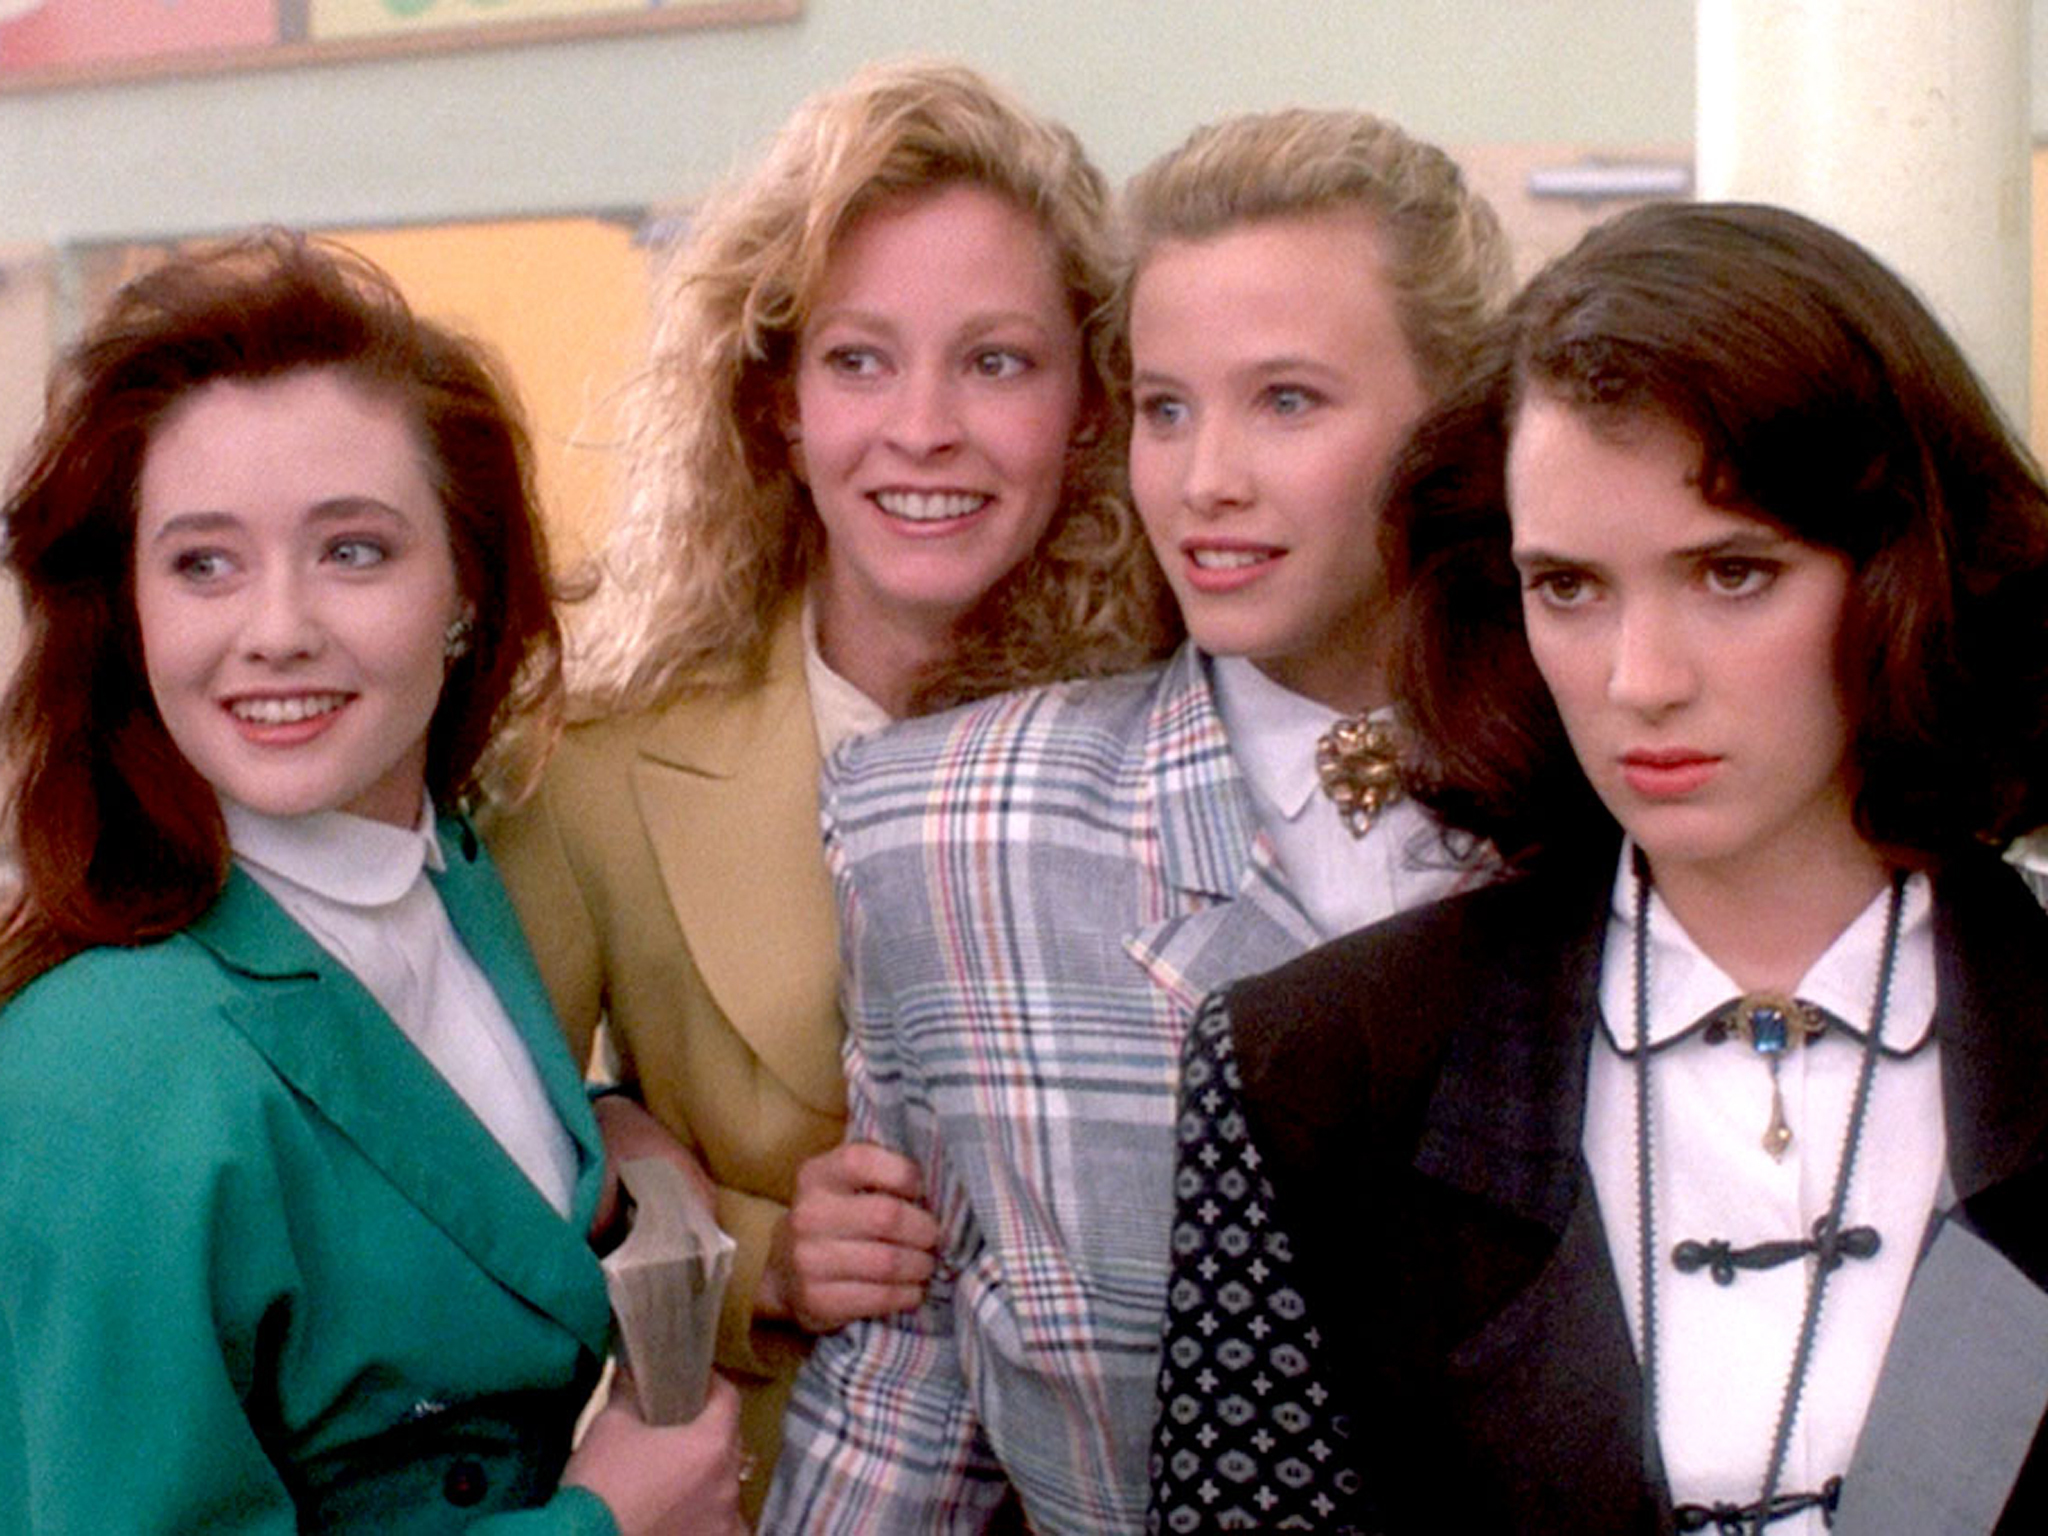 best comedy movies on netflix, Heathers